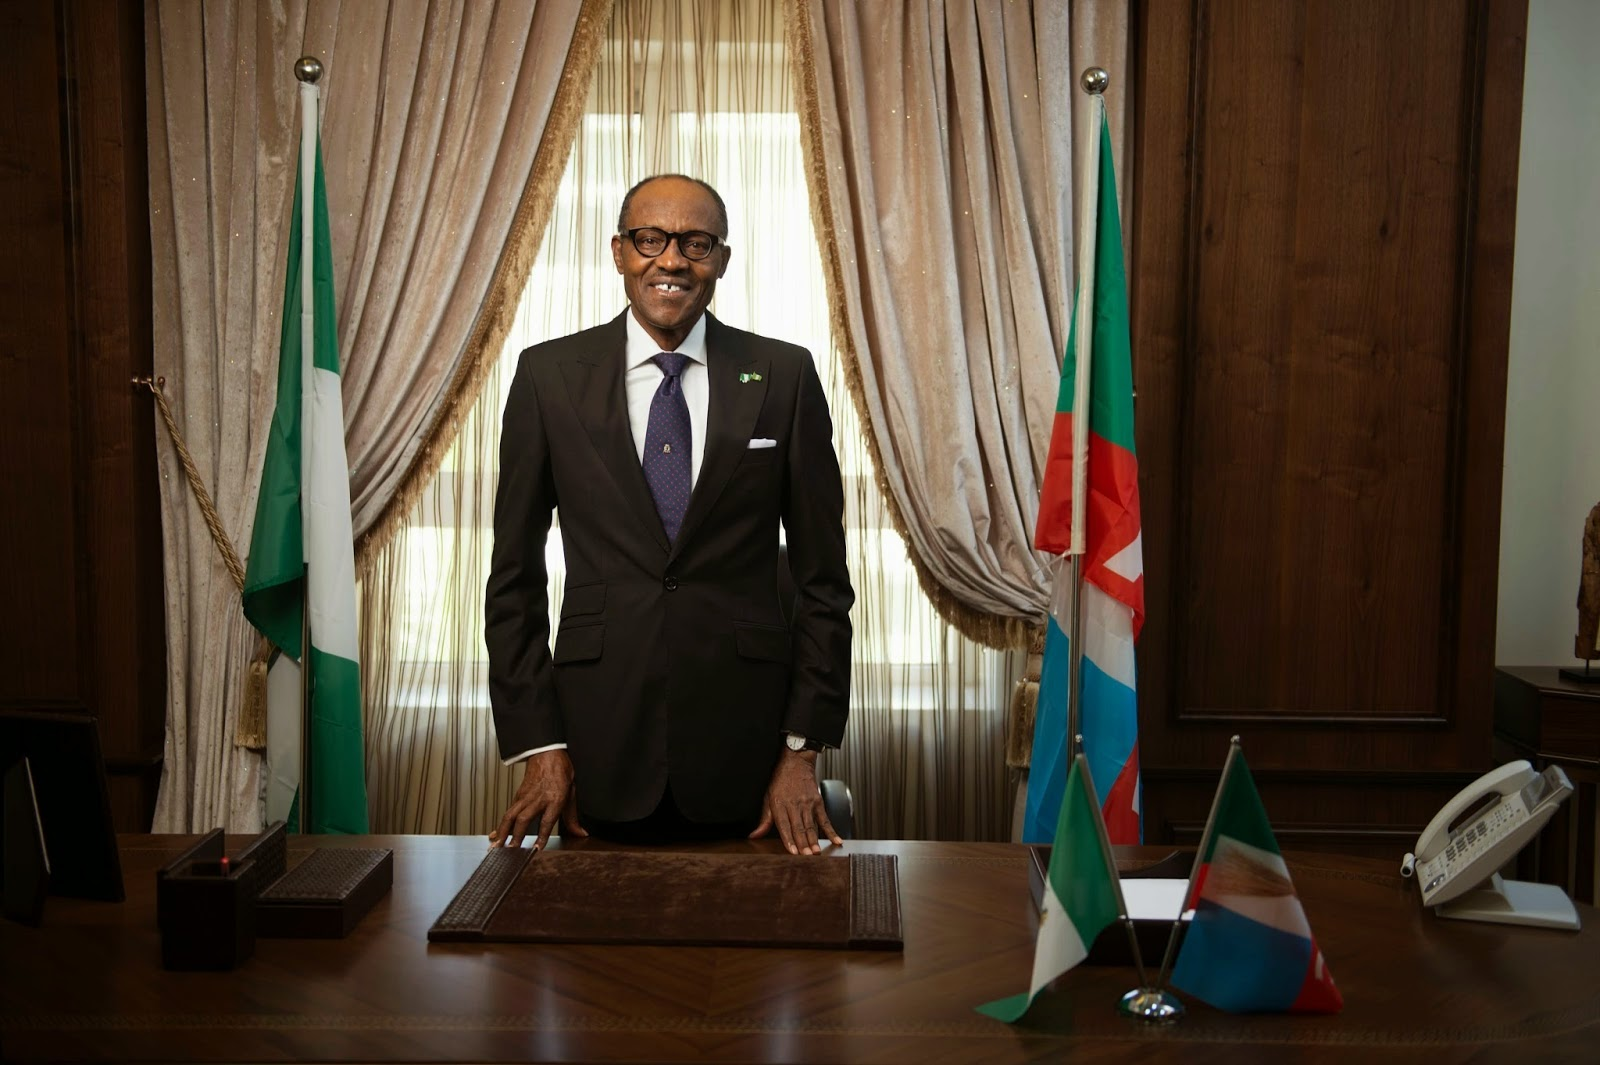 buhari plans for nigeria 2015